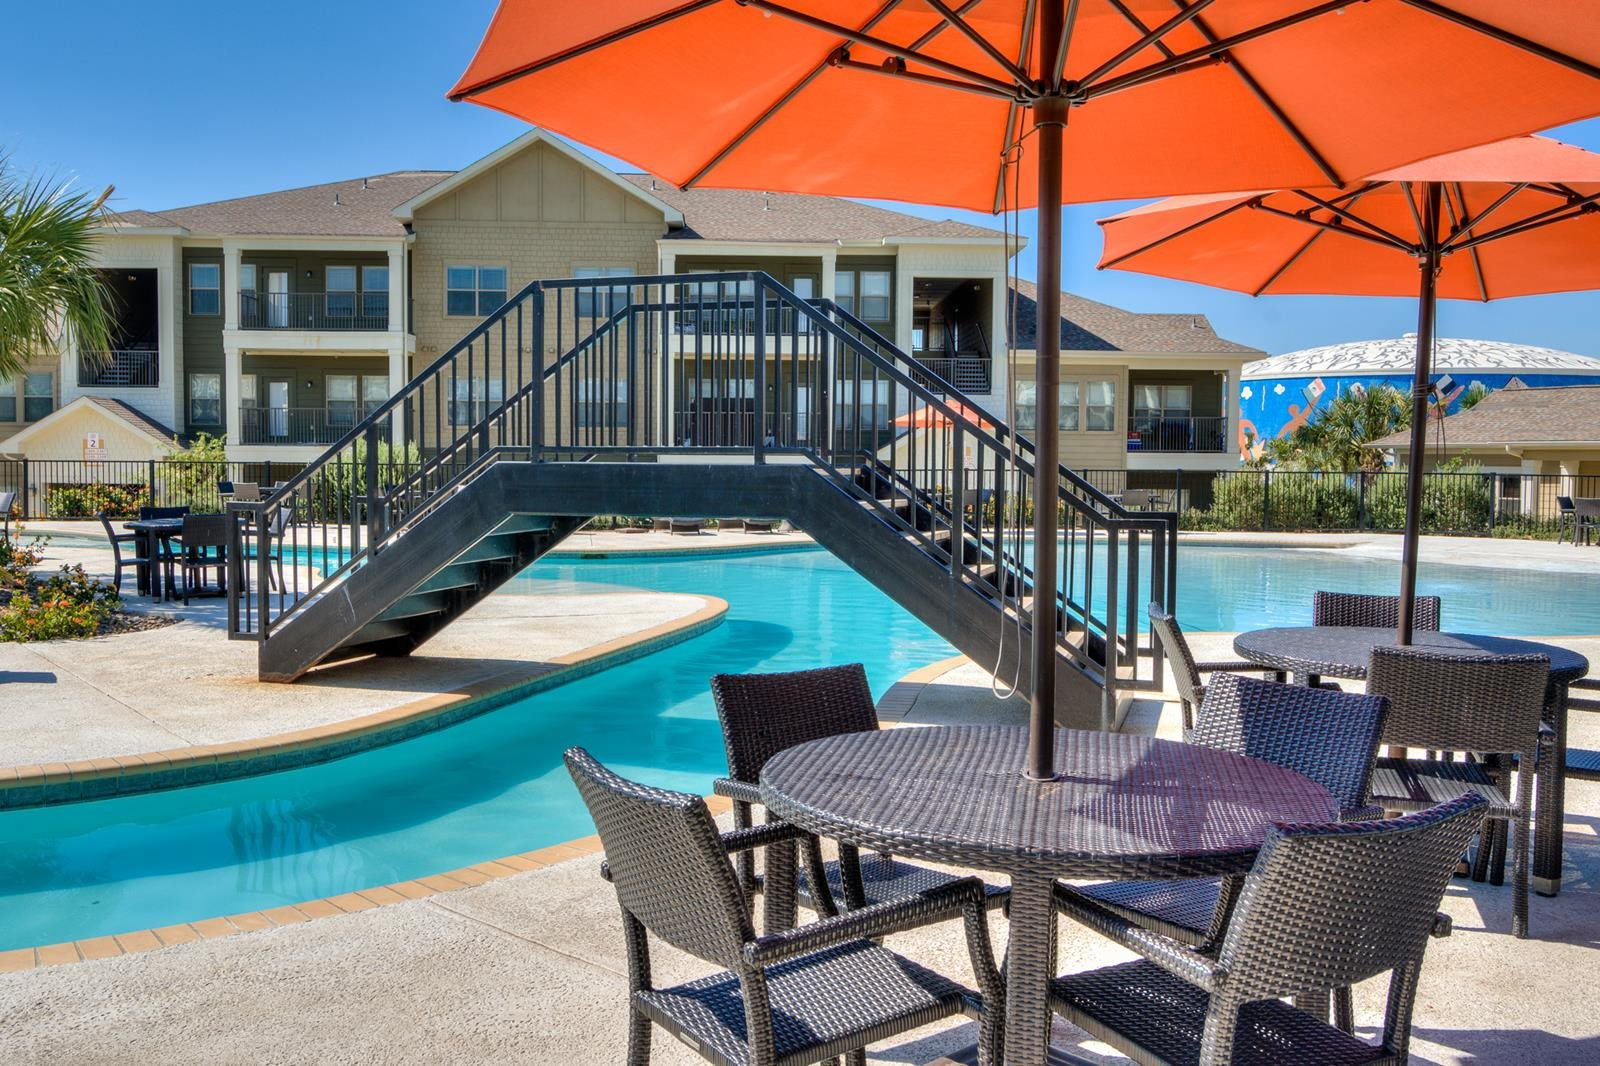 Poolside Dining Tables at La Contessa Luxury Apartments, Texas